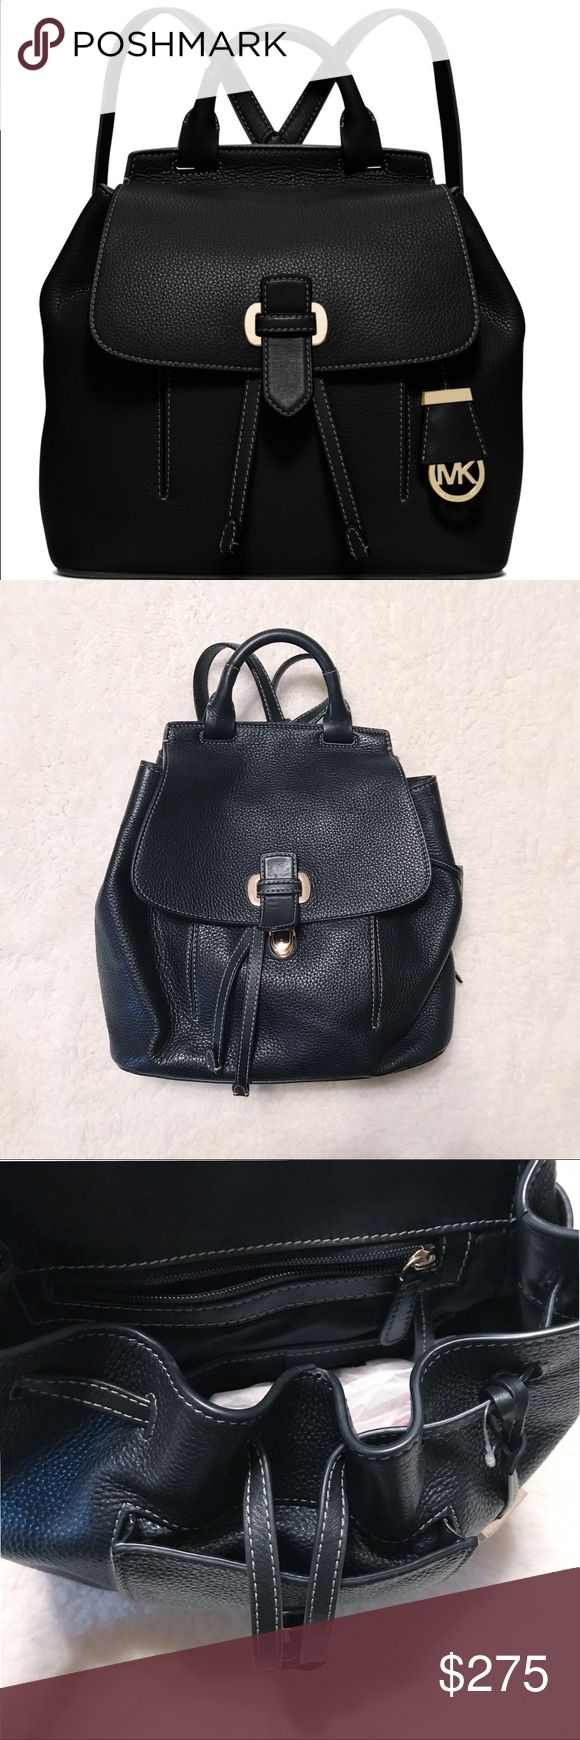 Michael Kors backpack The must have Romy Medium Backpack from MICHAEL Kors!!! Michael Kors comes elegantly crafted in luxe pebble leather with slender, adjustable straps. MICHAEL Michael Kors Bags Backpacks